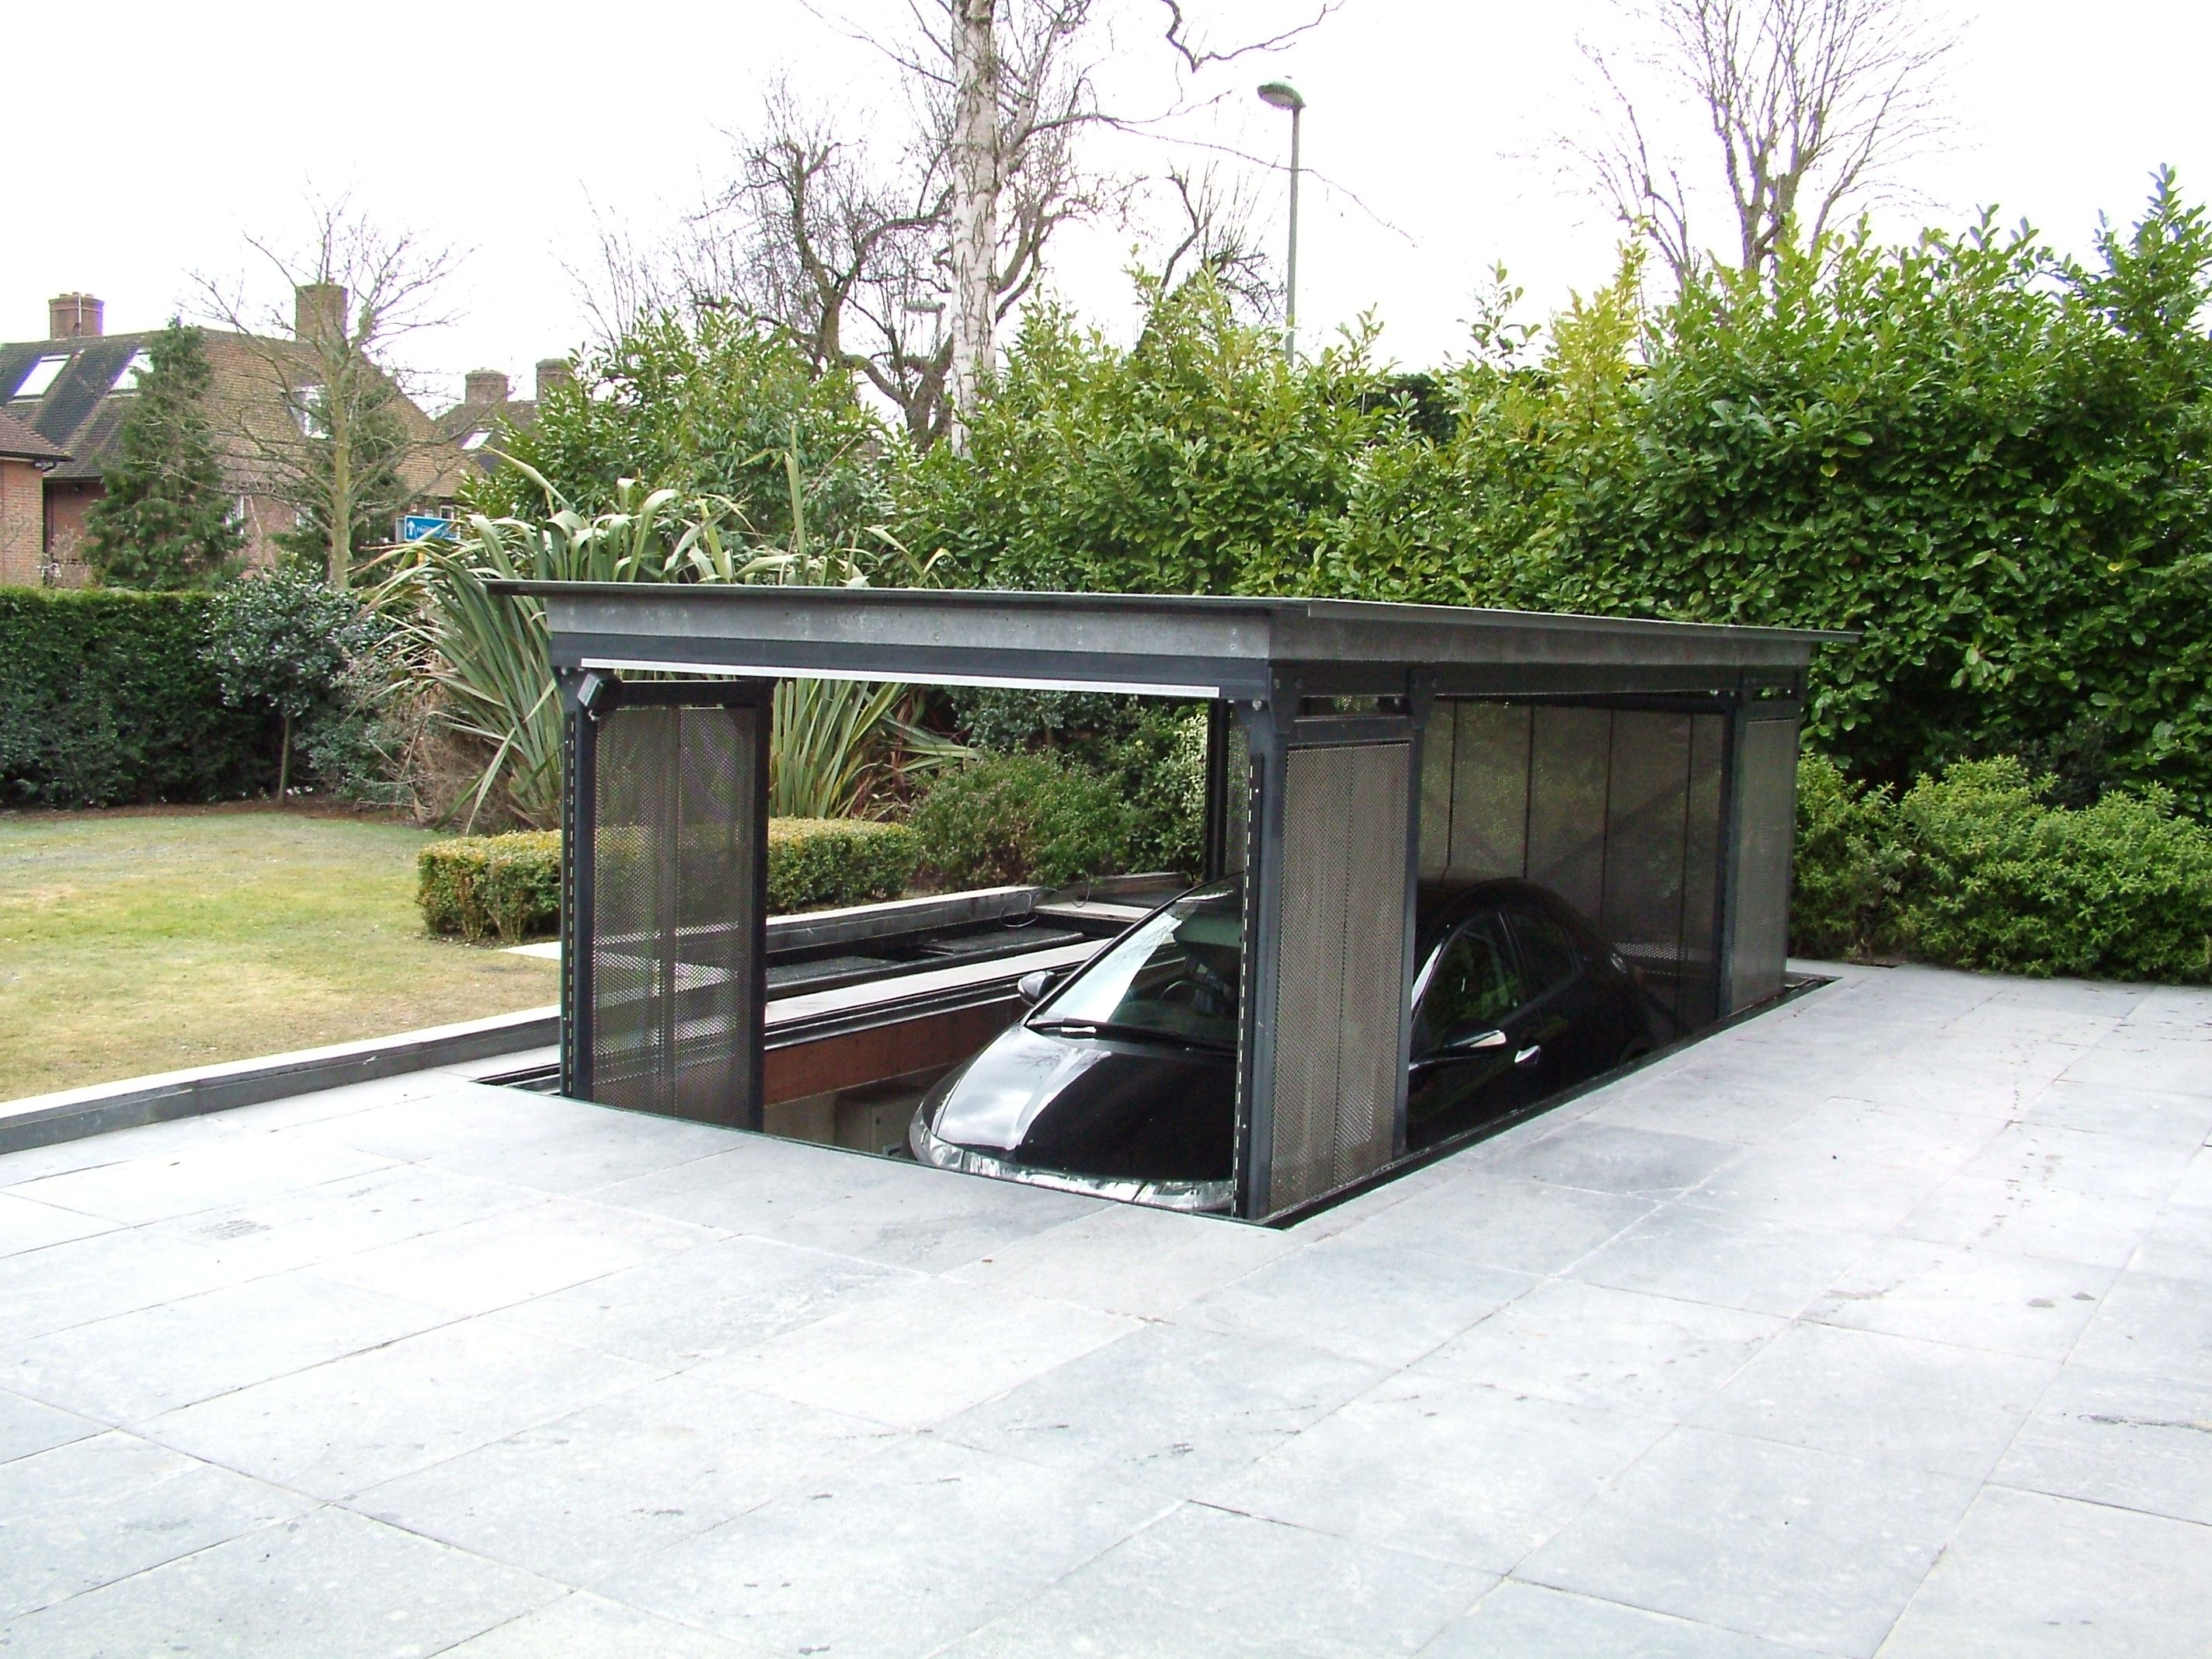 In Ground Garage Car Lift Underground Garage Lift Home Projects Underground Garage